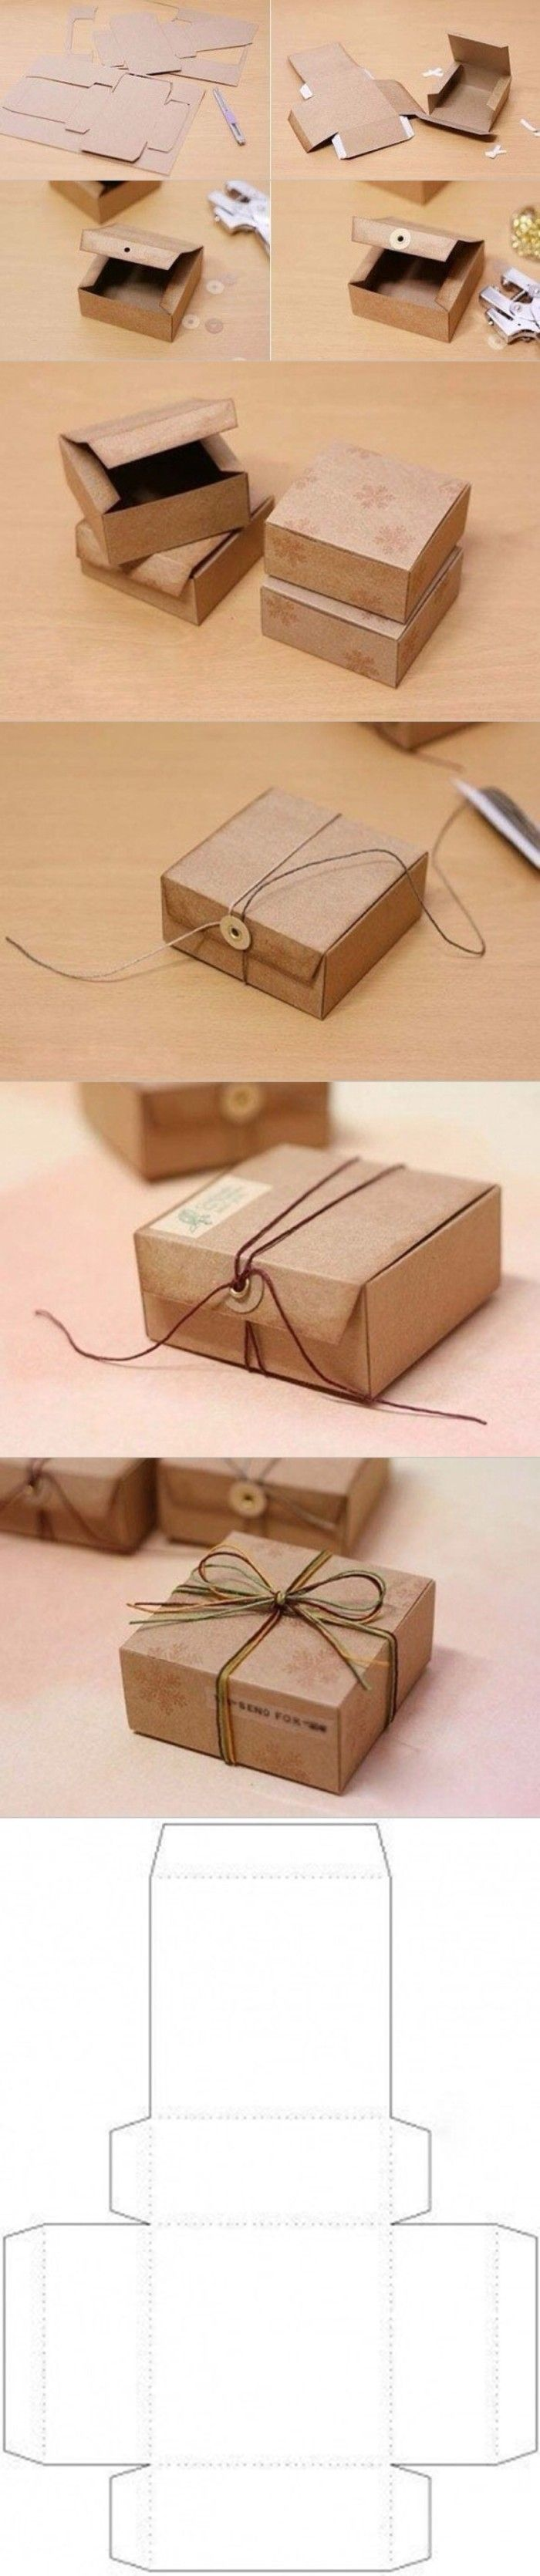 Creative Gift Wrapping: DIY cardboard gift boxes